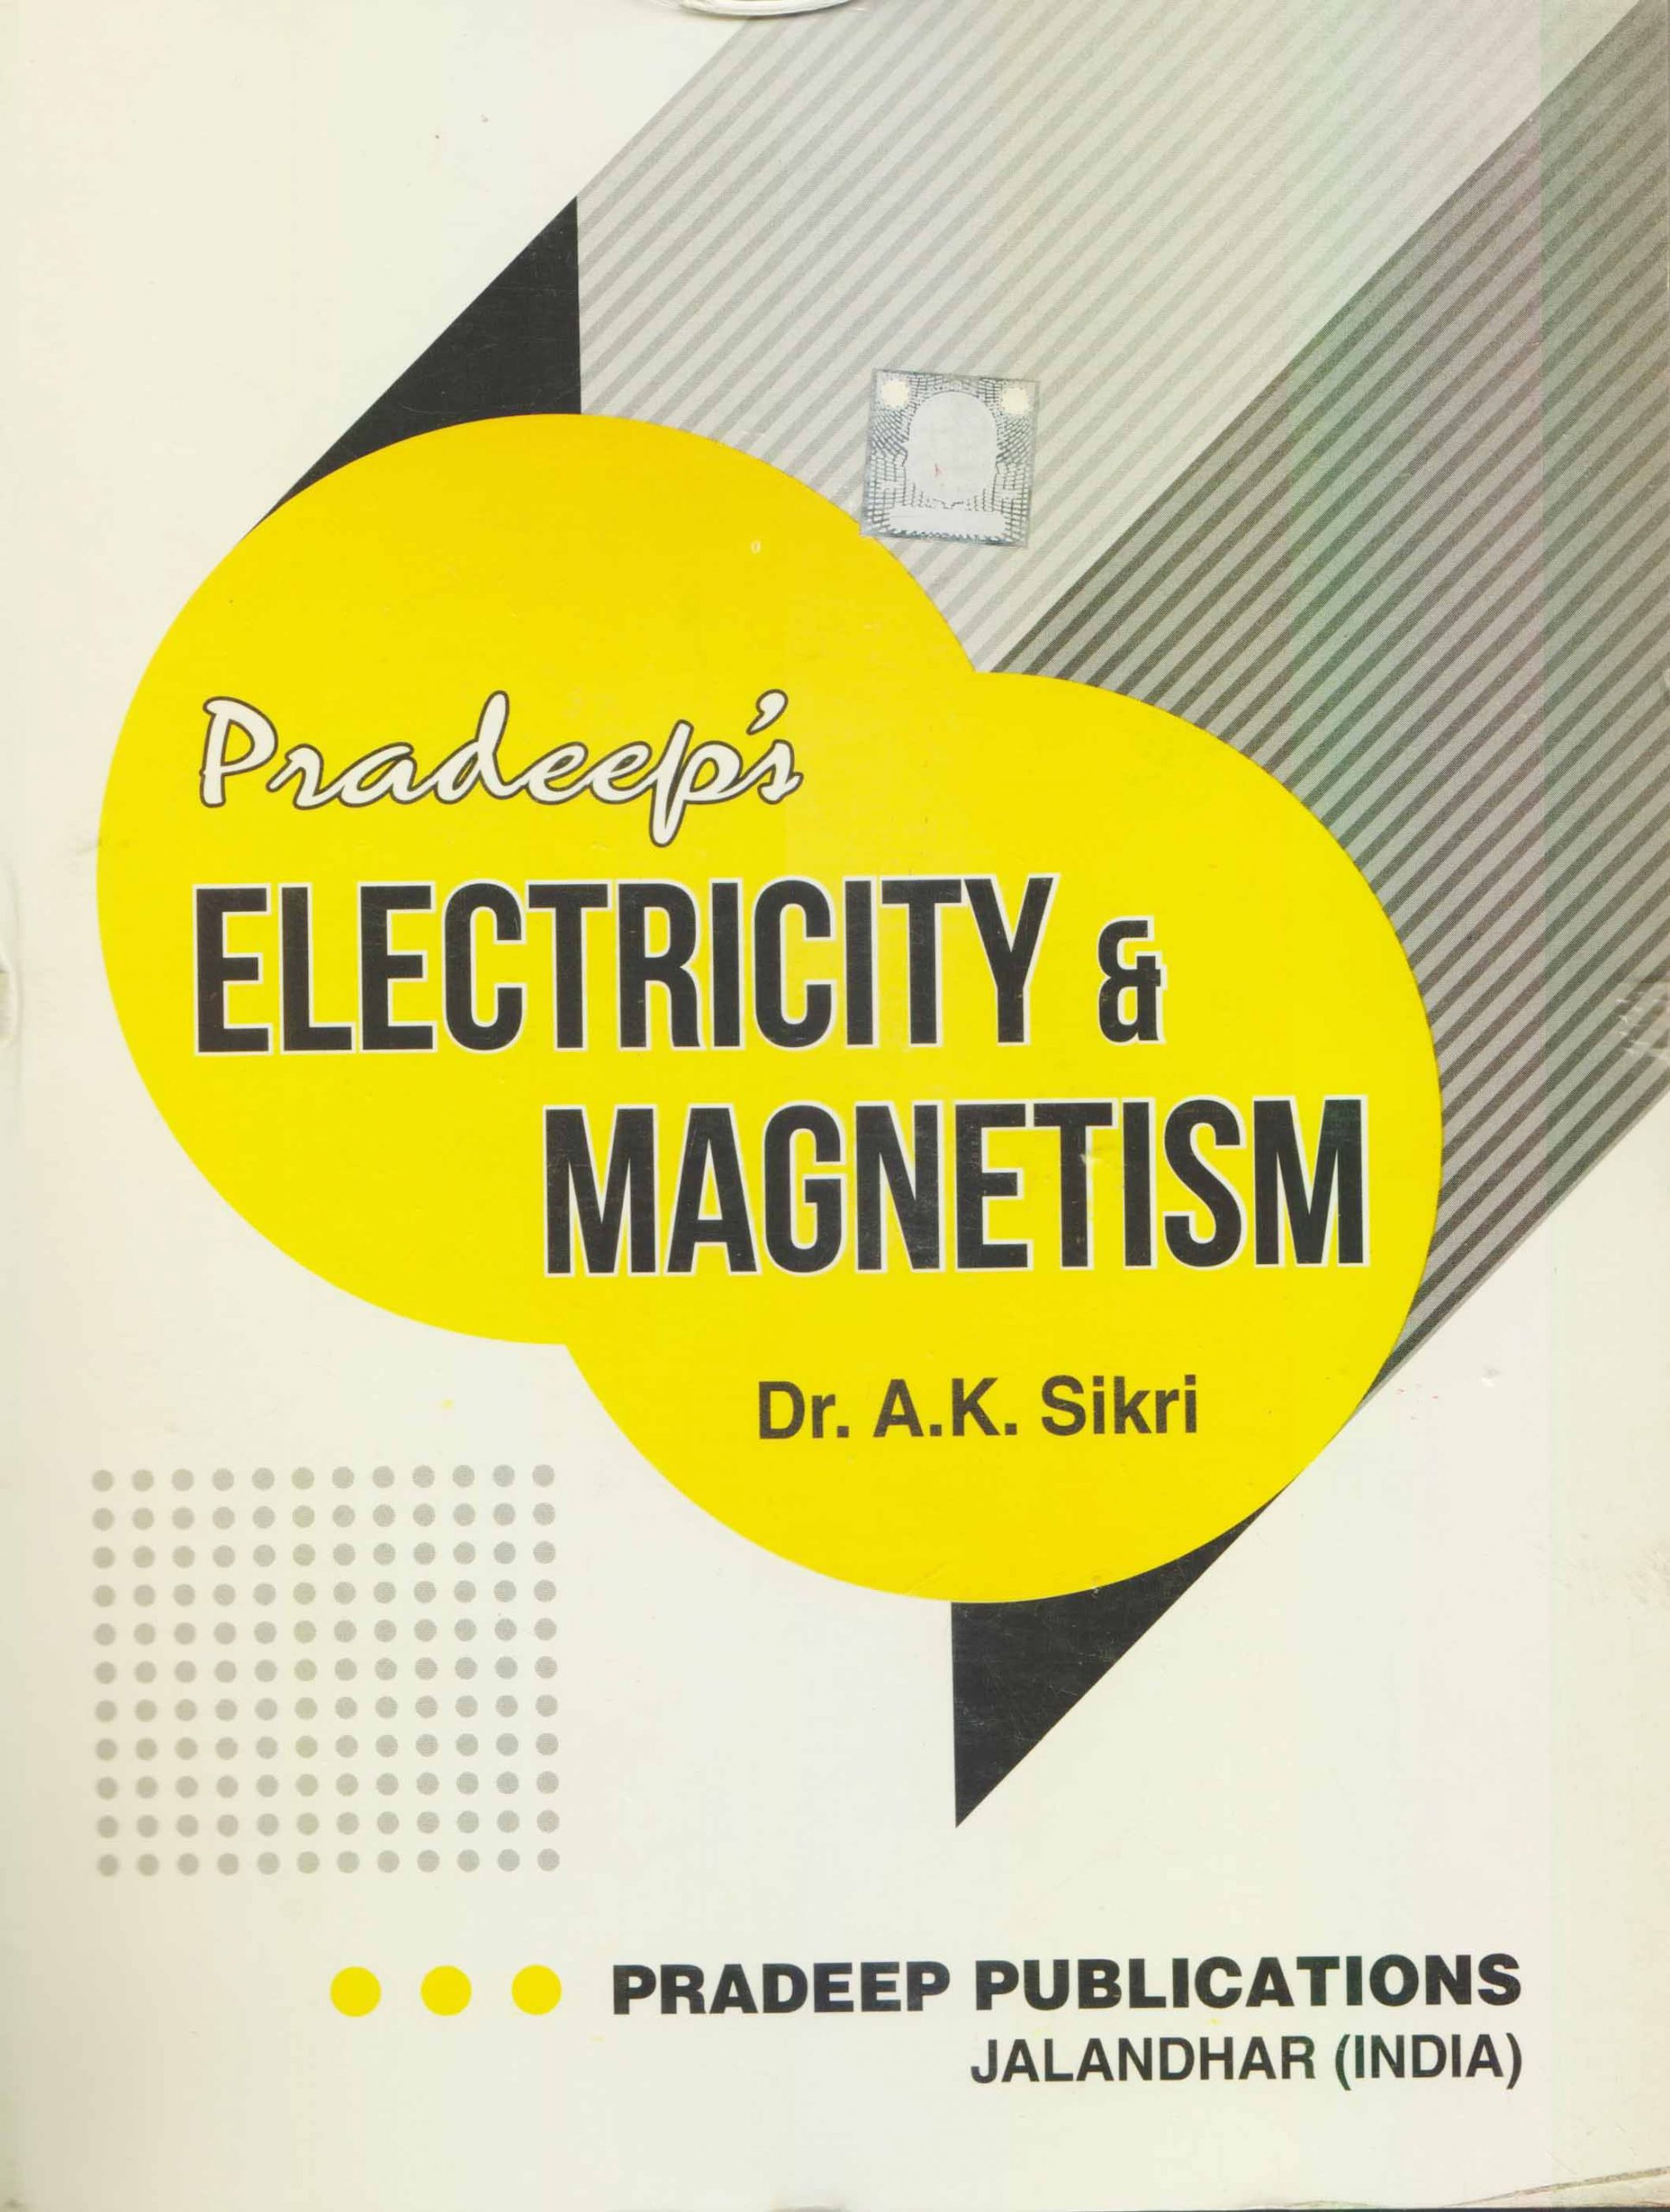 Pradeep Electricity and Magnetism B.Sc. 1 Vol. 2, Sem. 1 & 2 (P.U.) by A k Sikri, Edition 2020